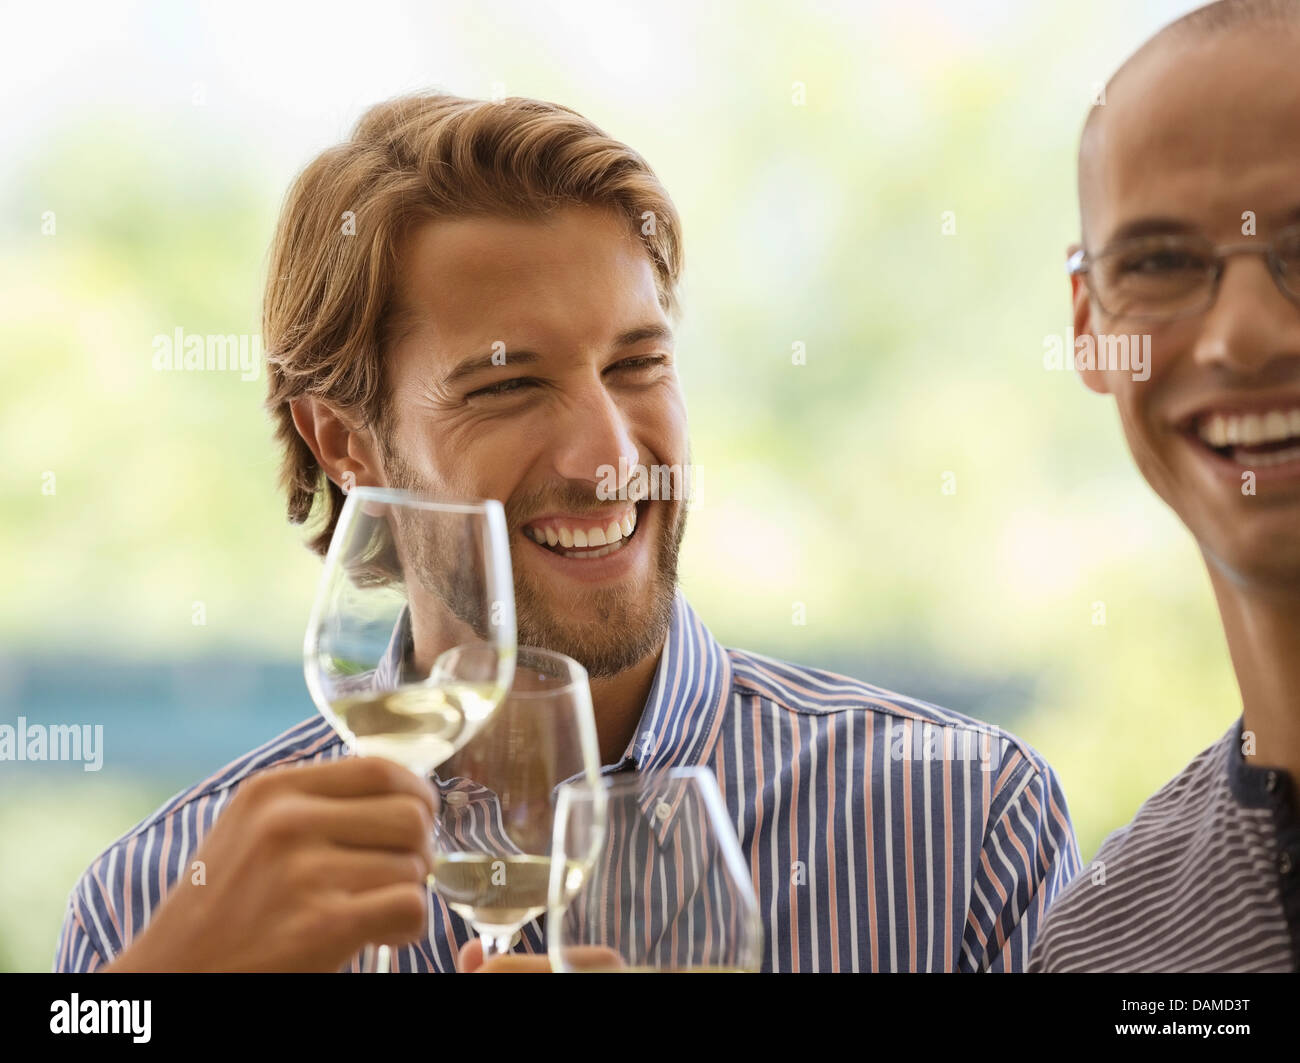 Men drinking wine together indoors - Stock Image